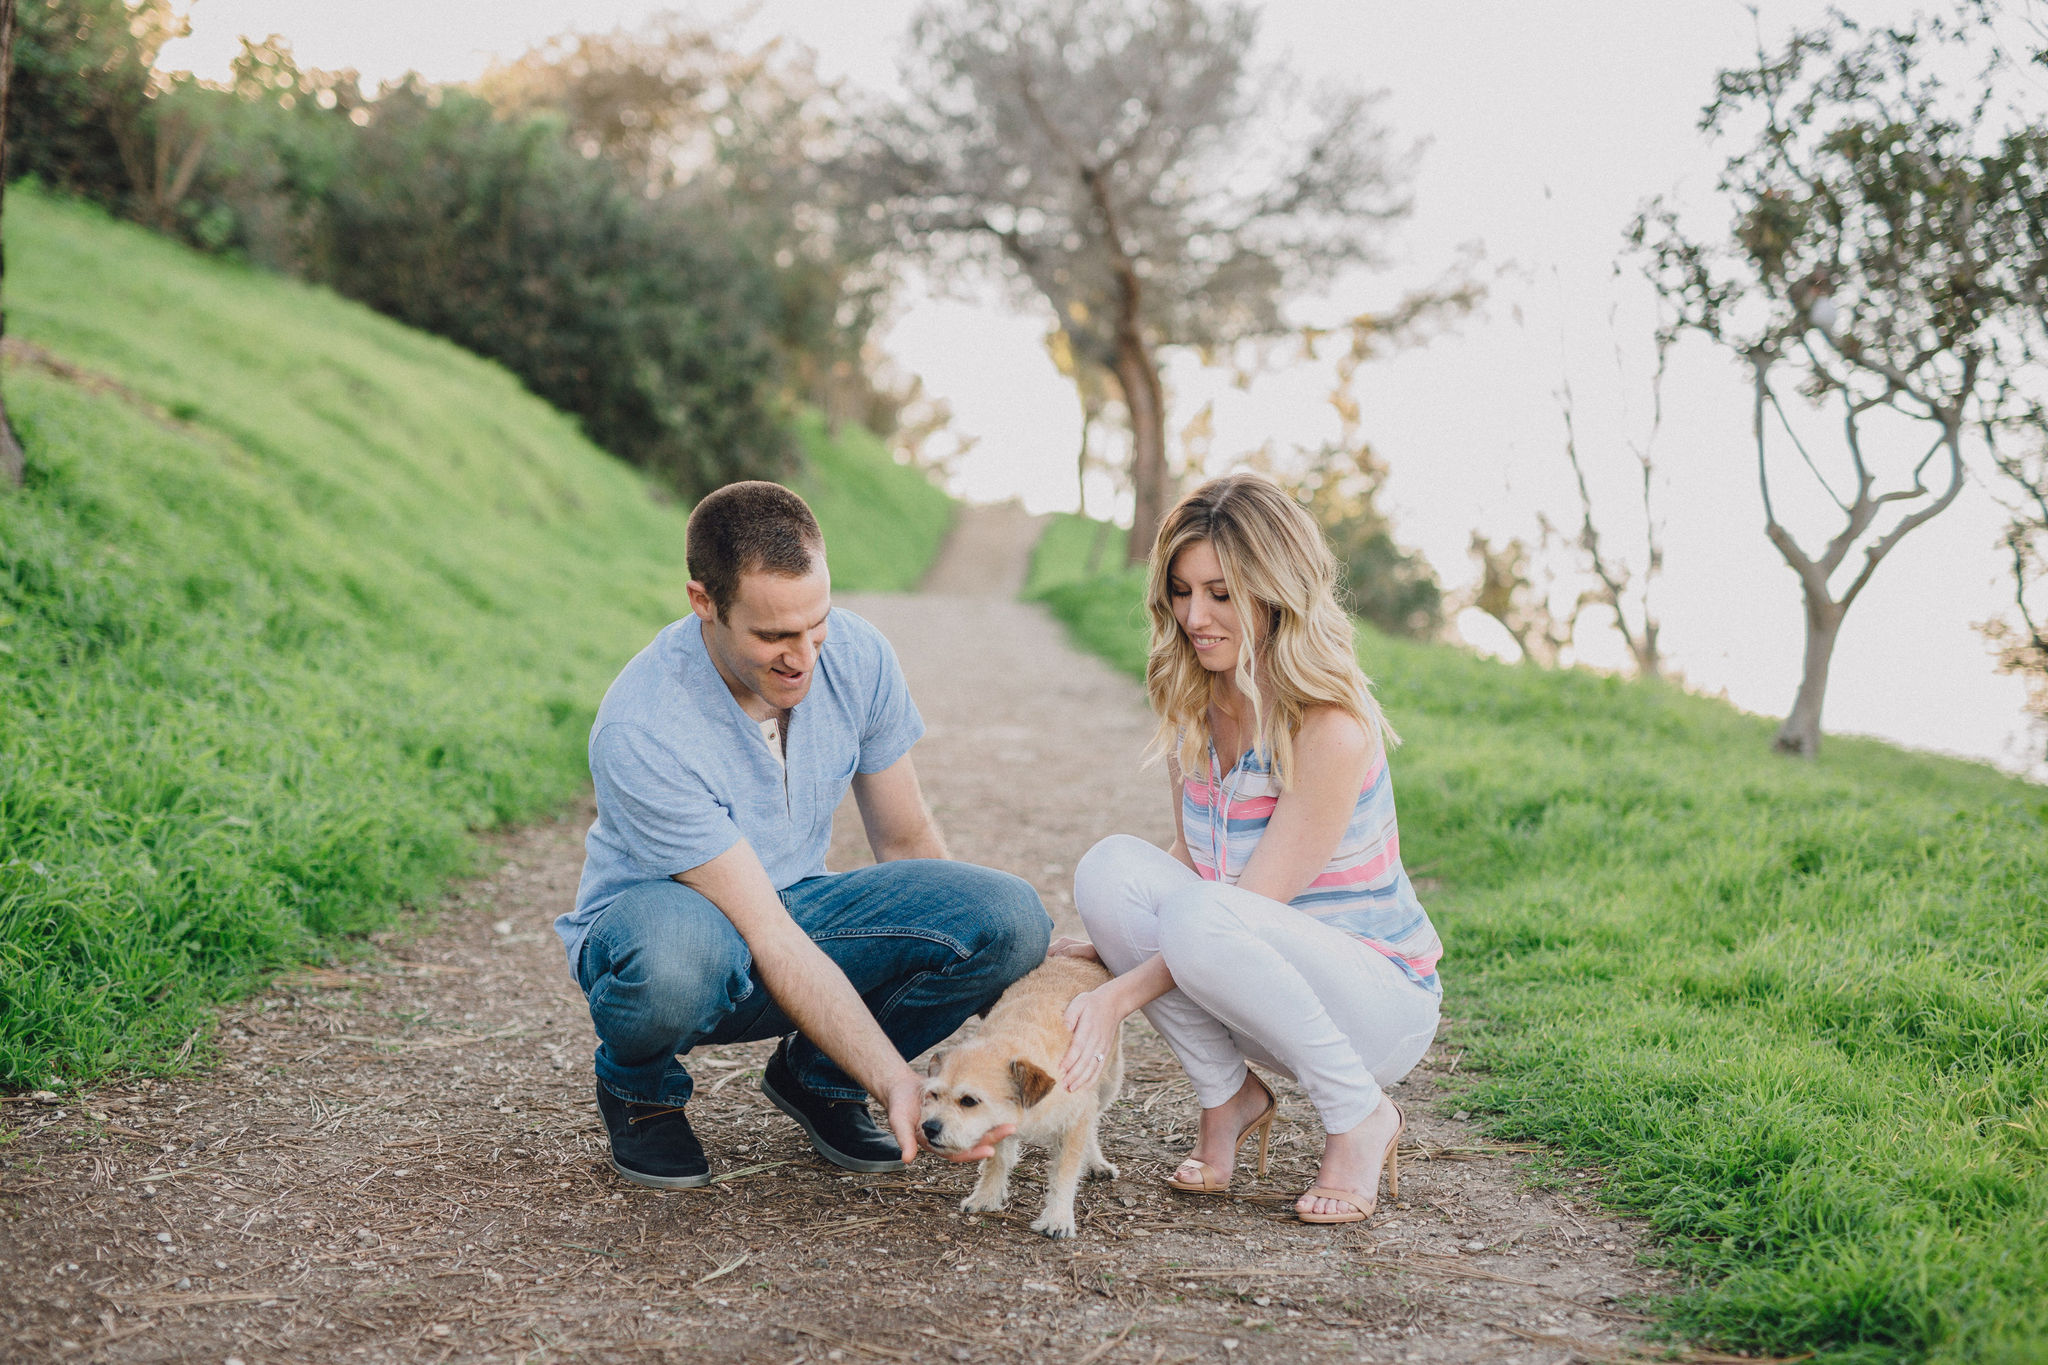 Bride & Groom Dog | Palos Verdes